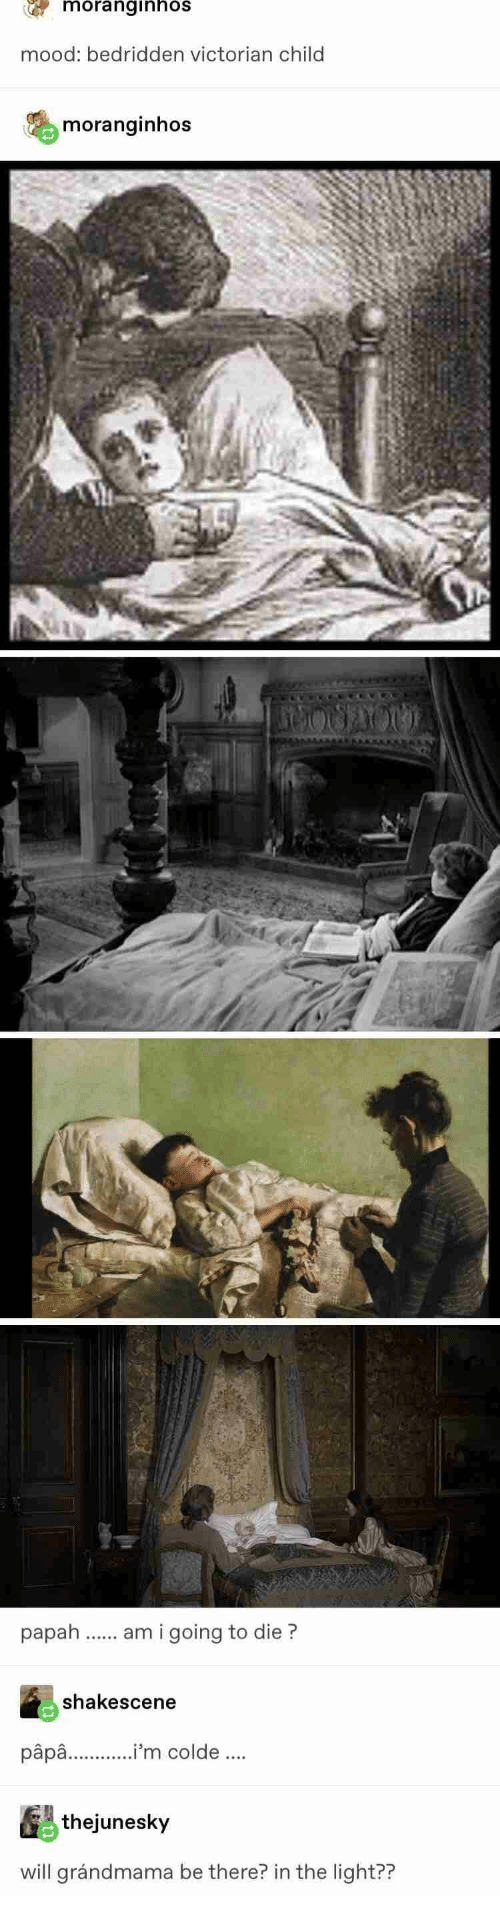 Mood, Victorian, and Light: moranginhos  mood: bedridden victorian child  moranginhos  am i going to die?  shakescene  pâpa..'m colde.  thejunesky  will grándmama be there? in the light??